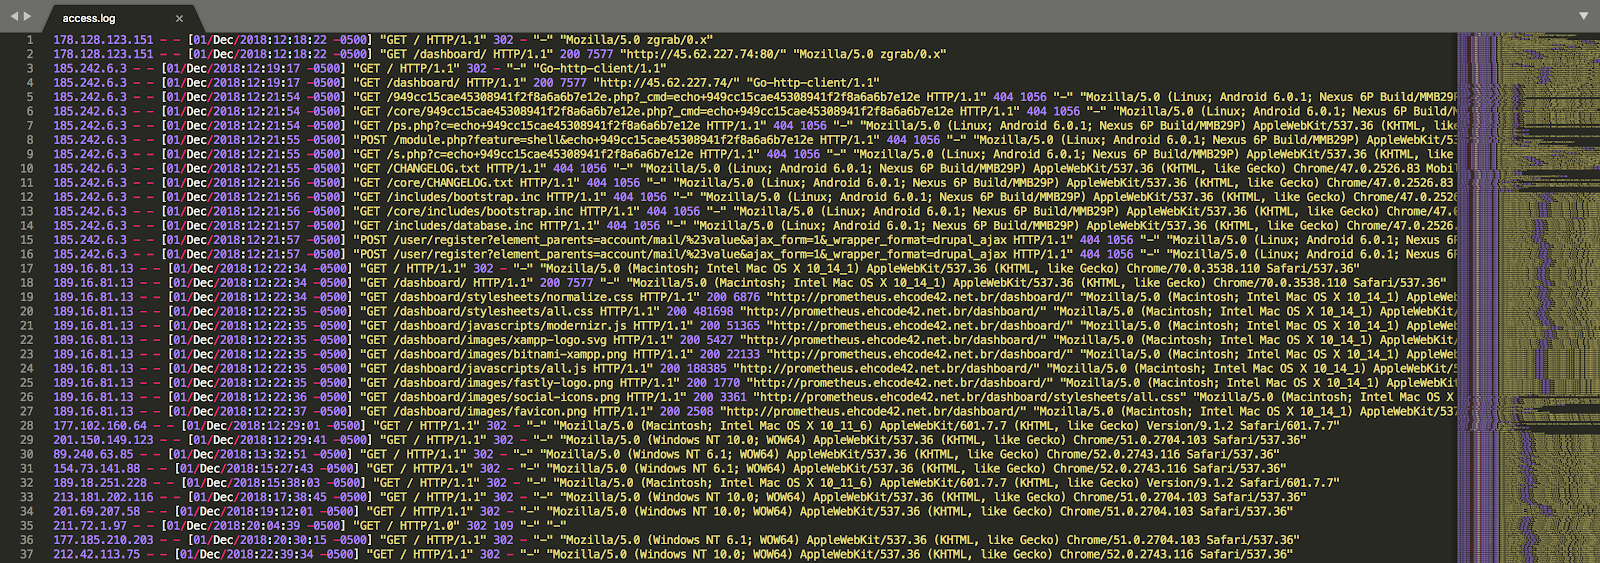 Apache log analysis with Sublime Text 3 | StillzTech